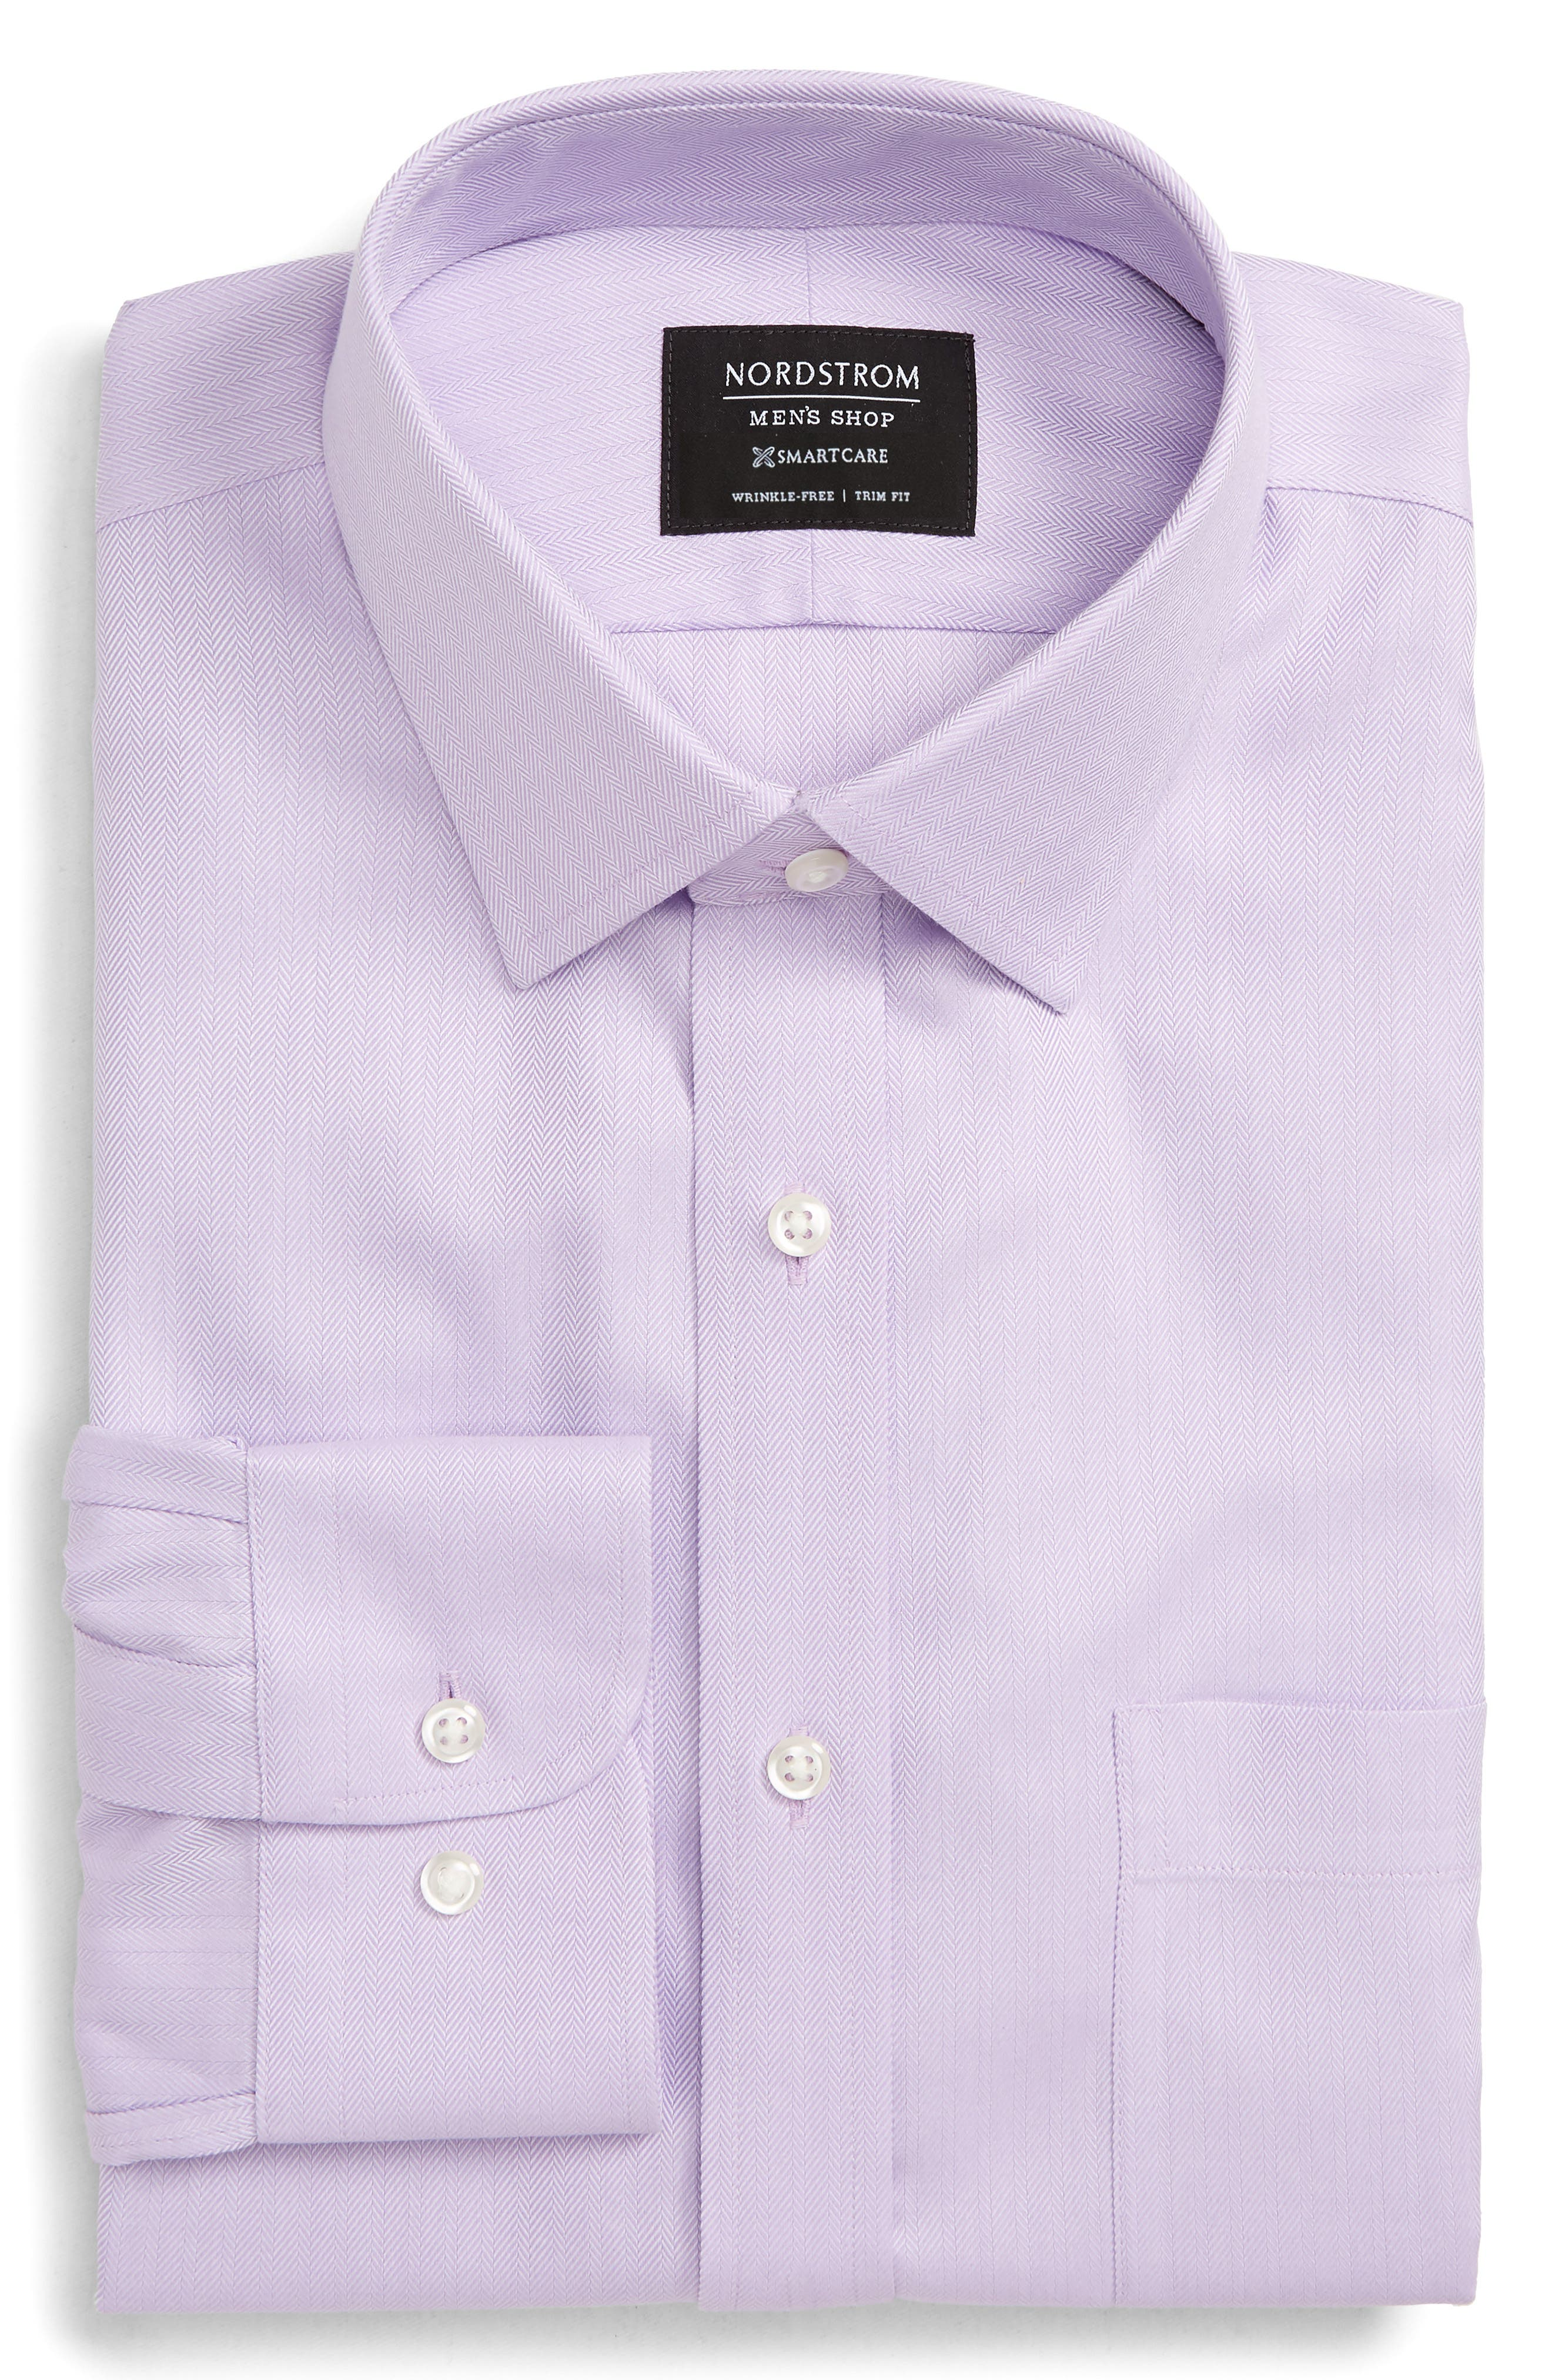 Nordstrom Shop Smartcare(TM) Trim Fit Herringbone Dress Shirt - Purple